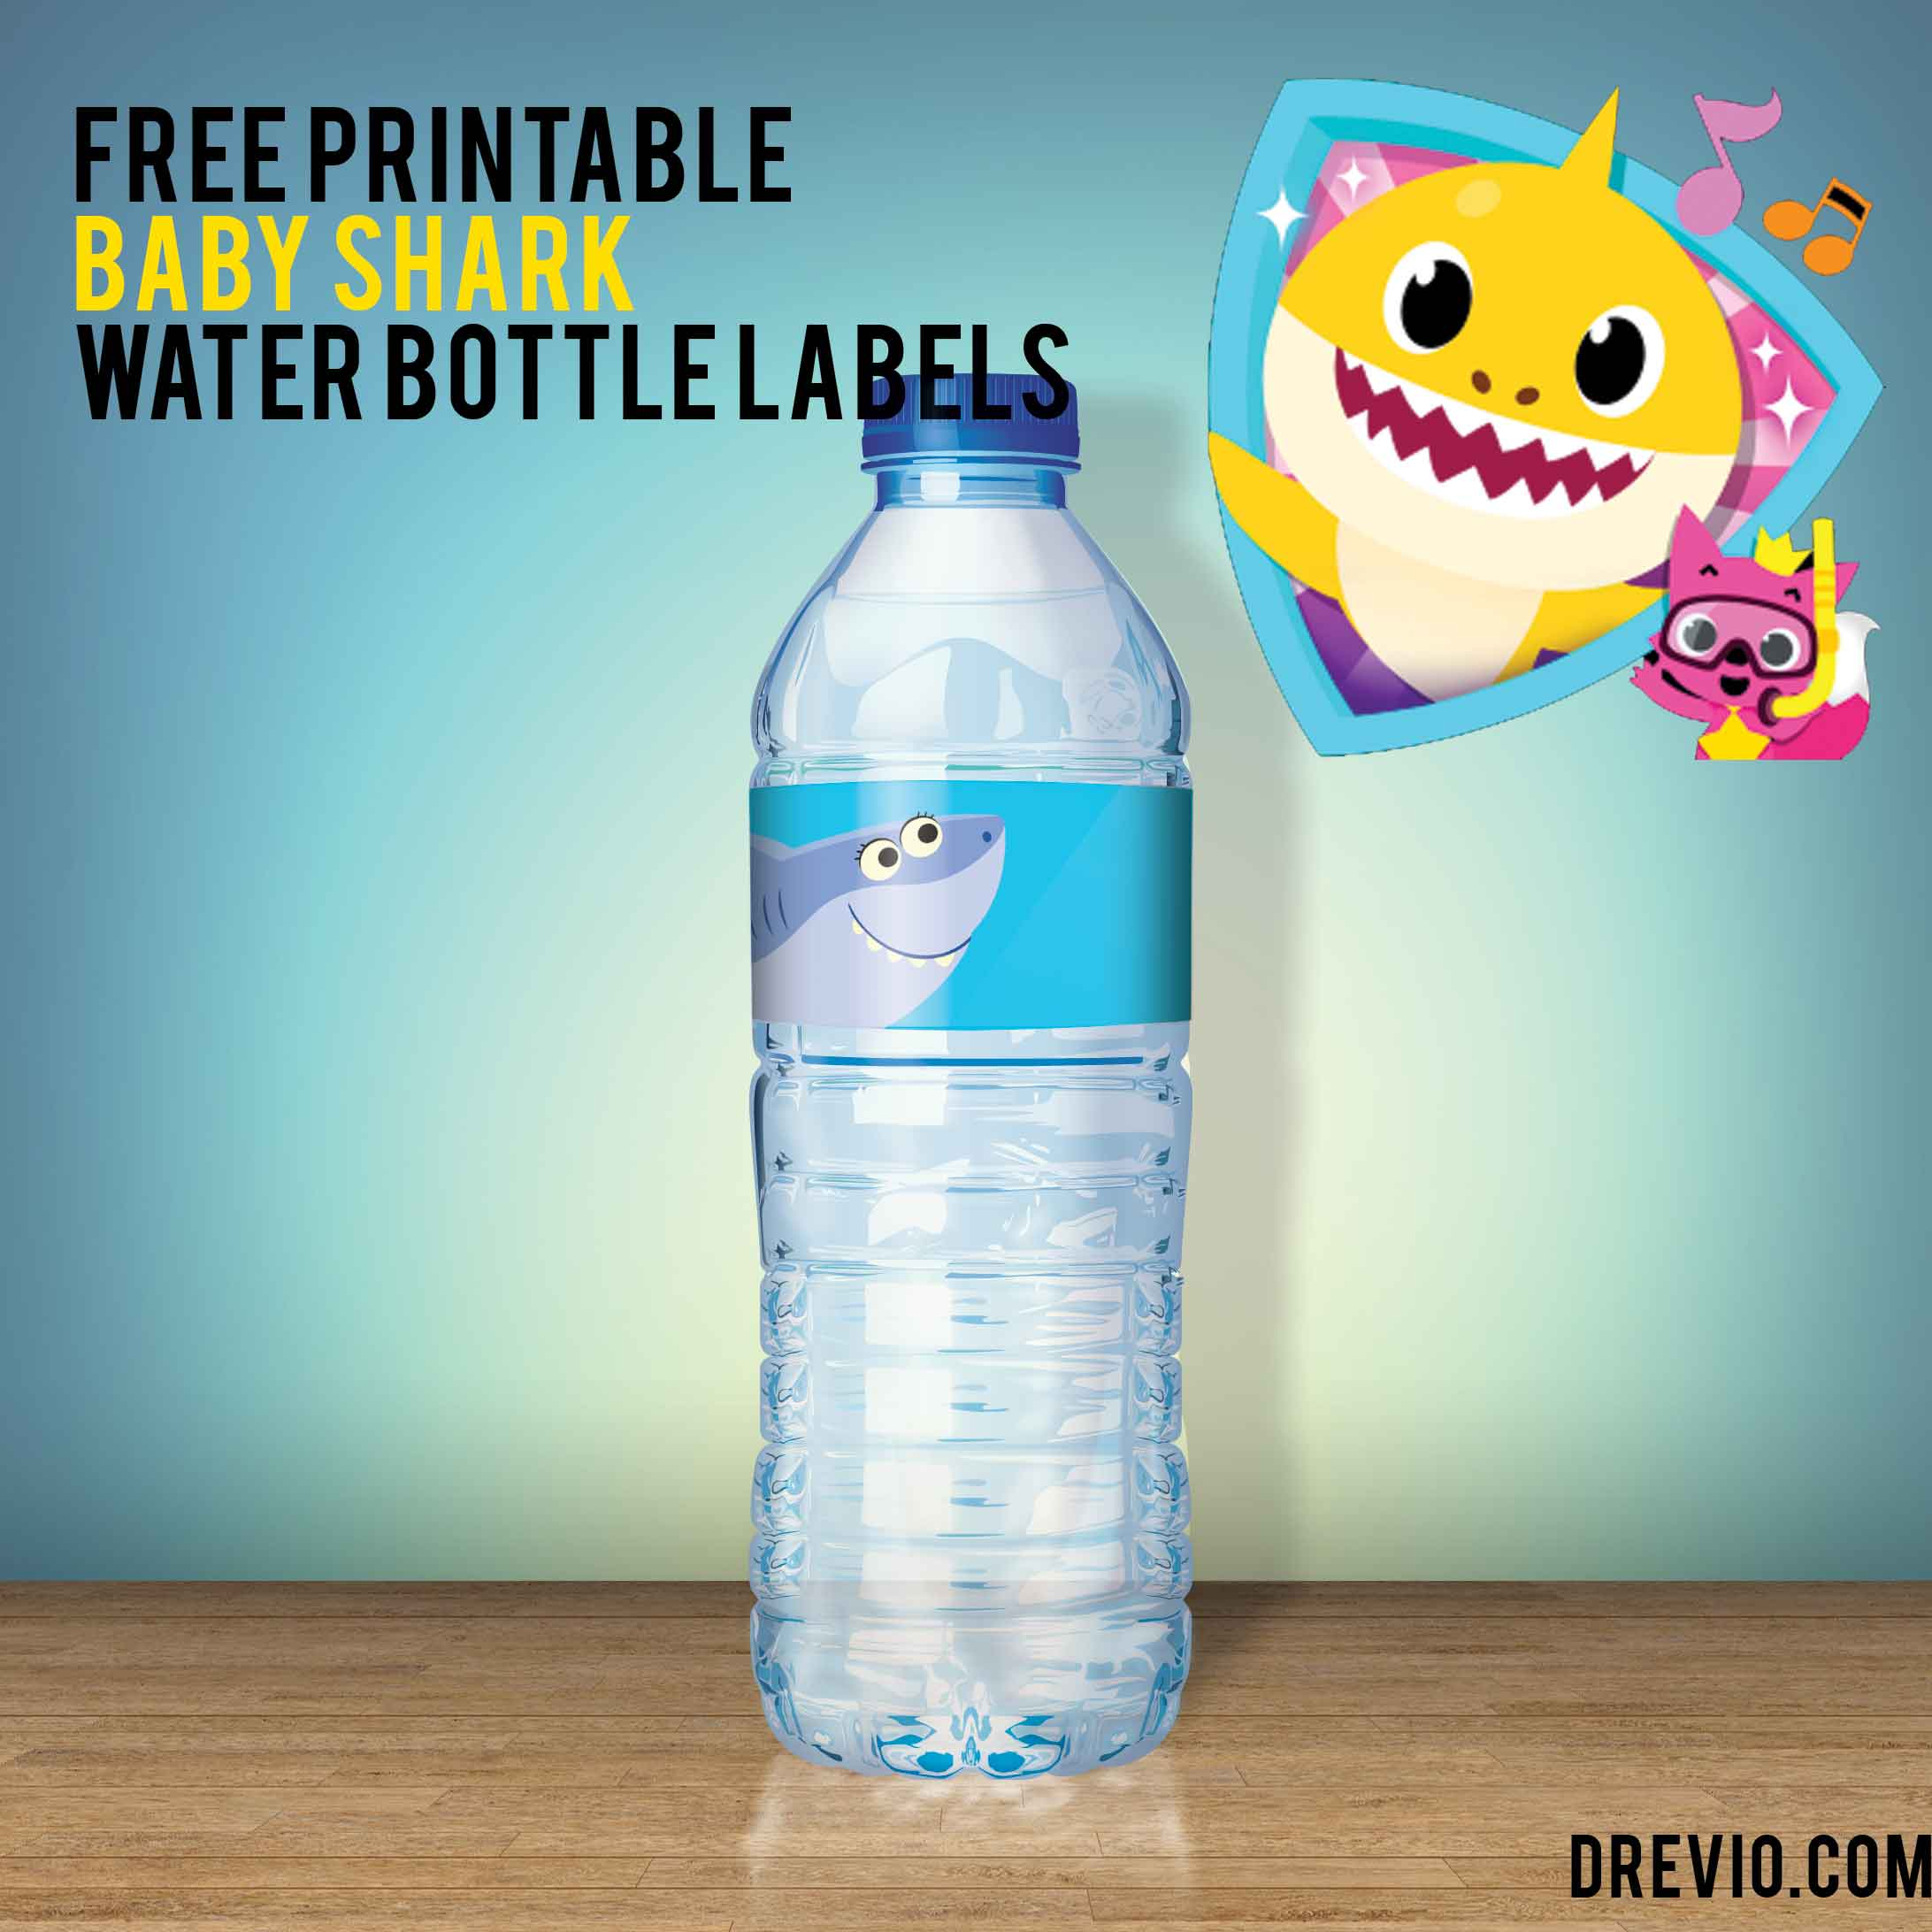 Free Pinkfong Baby Shark Water Bottle Labels